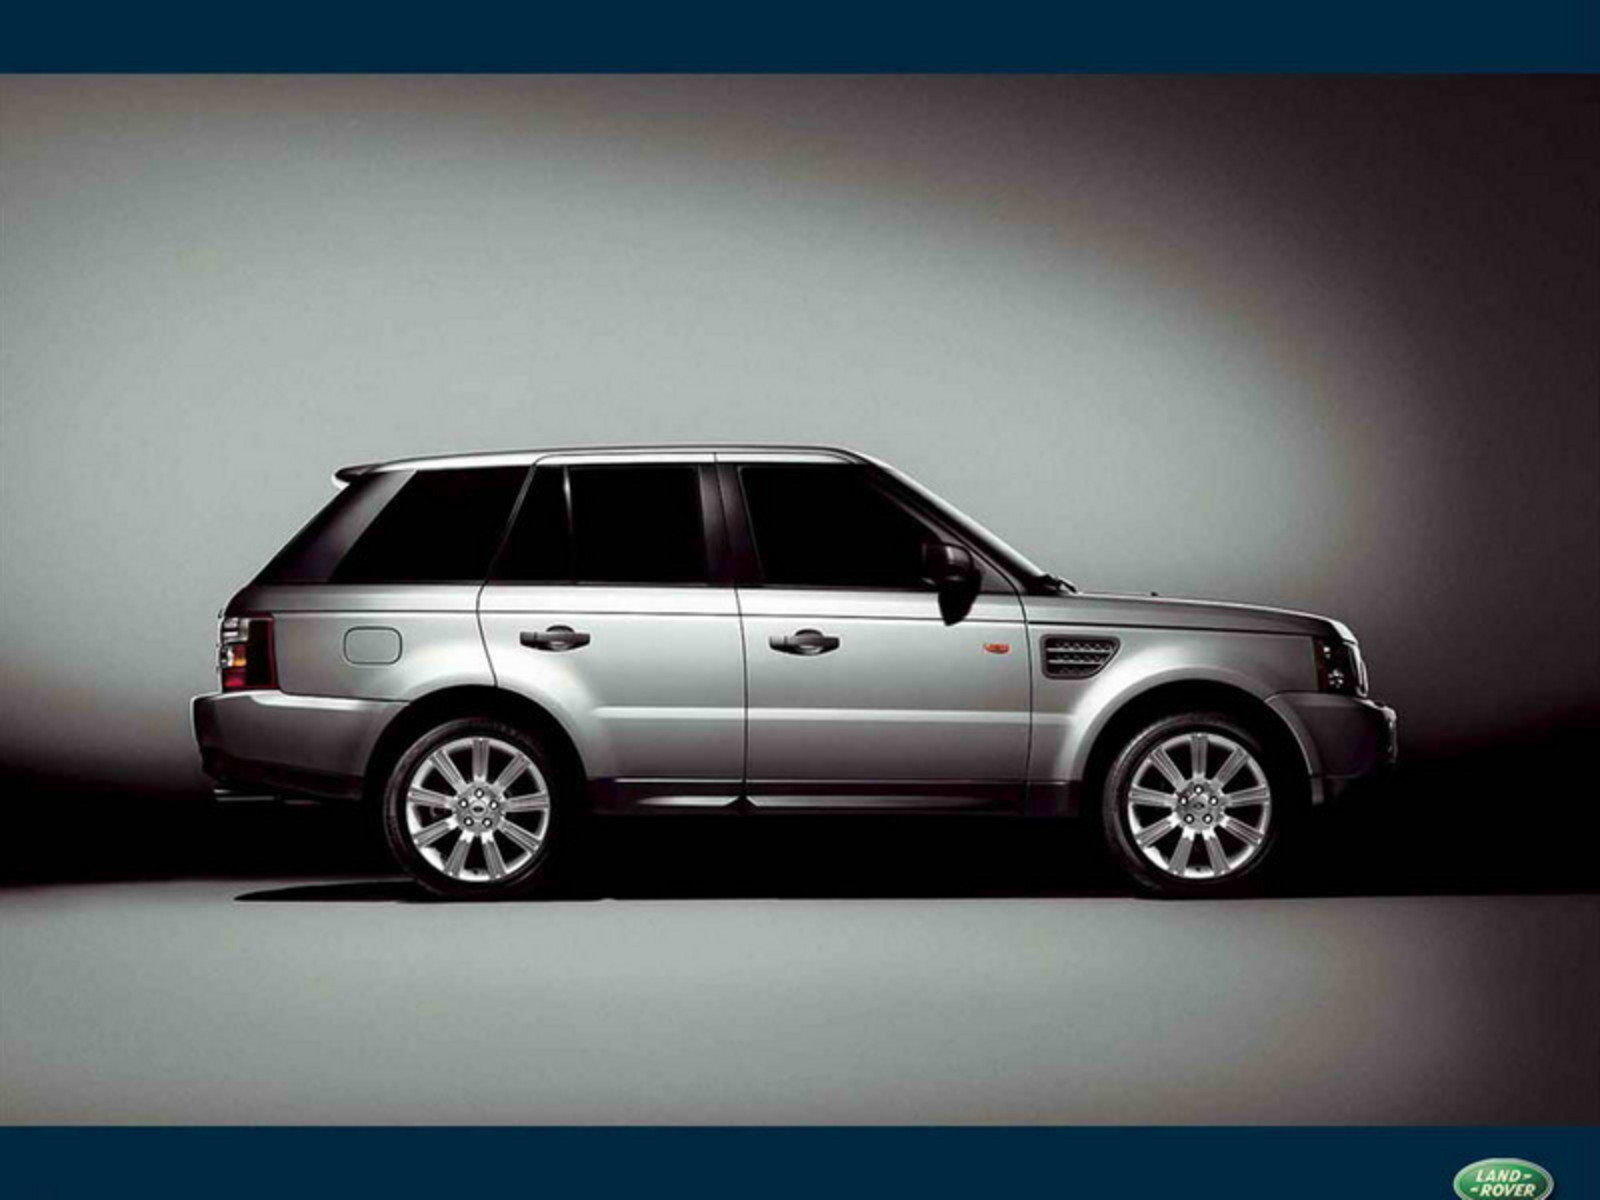 2006 range rover sport hst picture 49266 car review. Black Bedroom Furniture Sets. Home Design Ideas